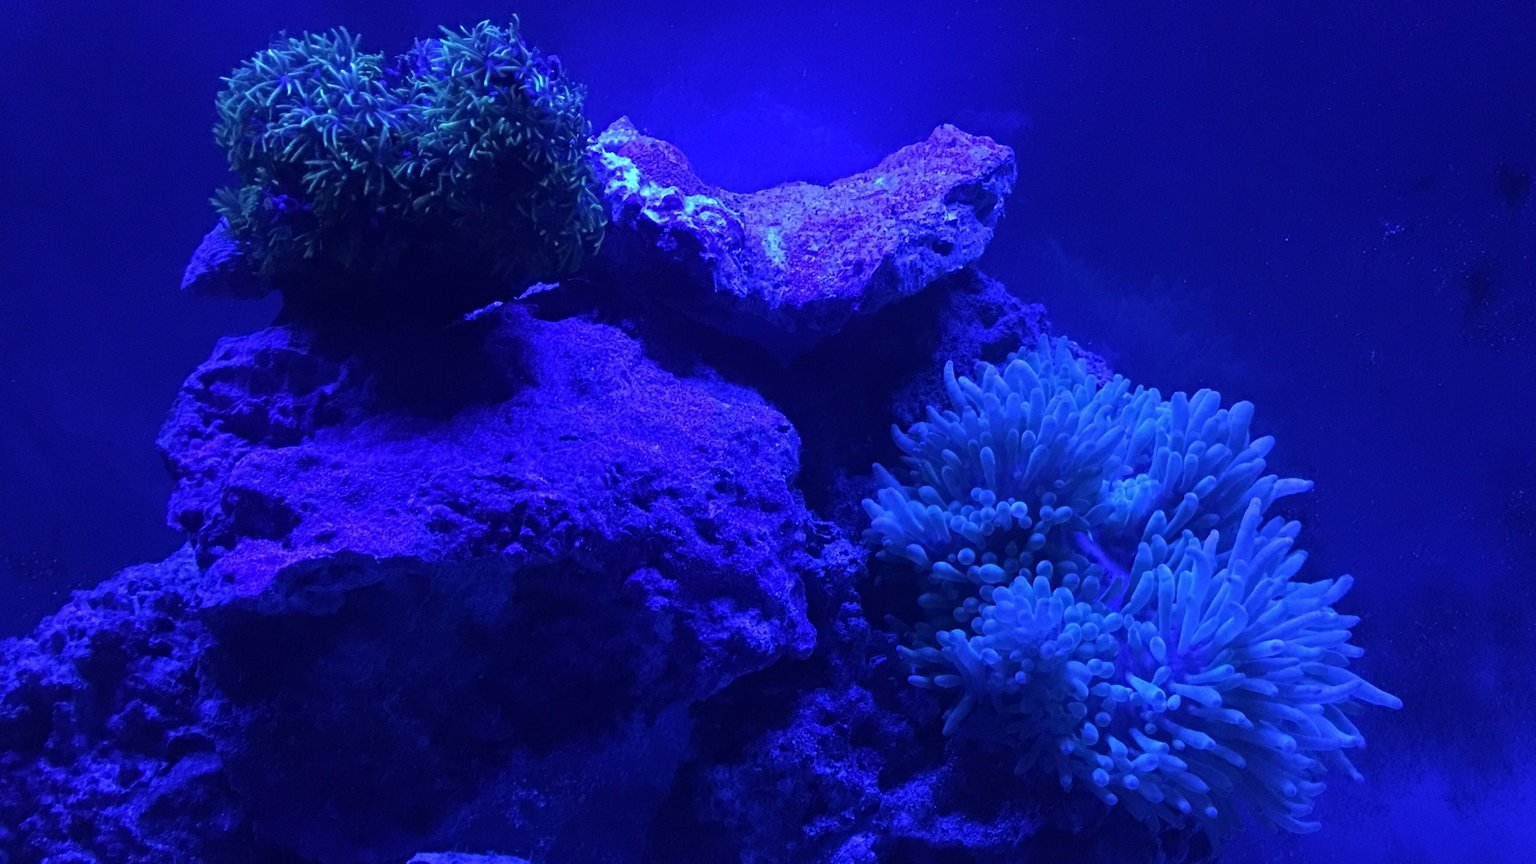 fish tank picture - Moon light glow